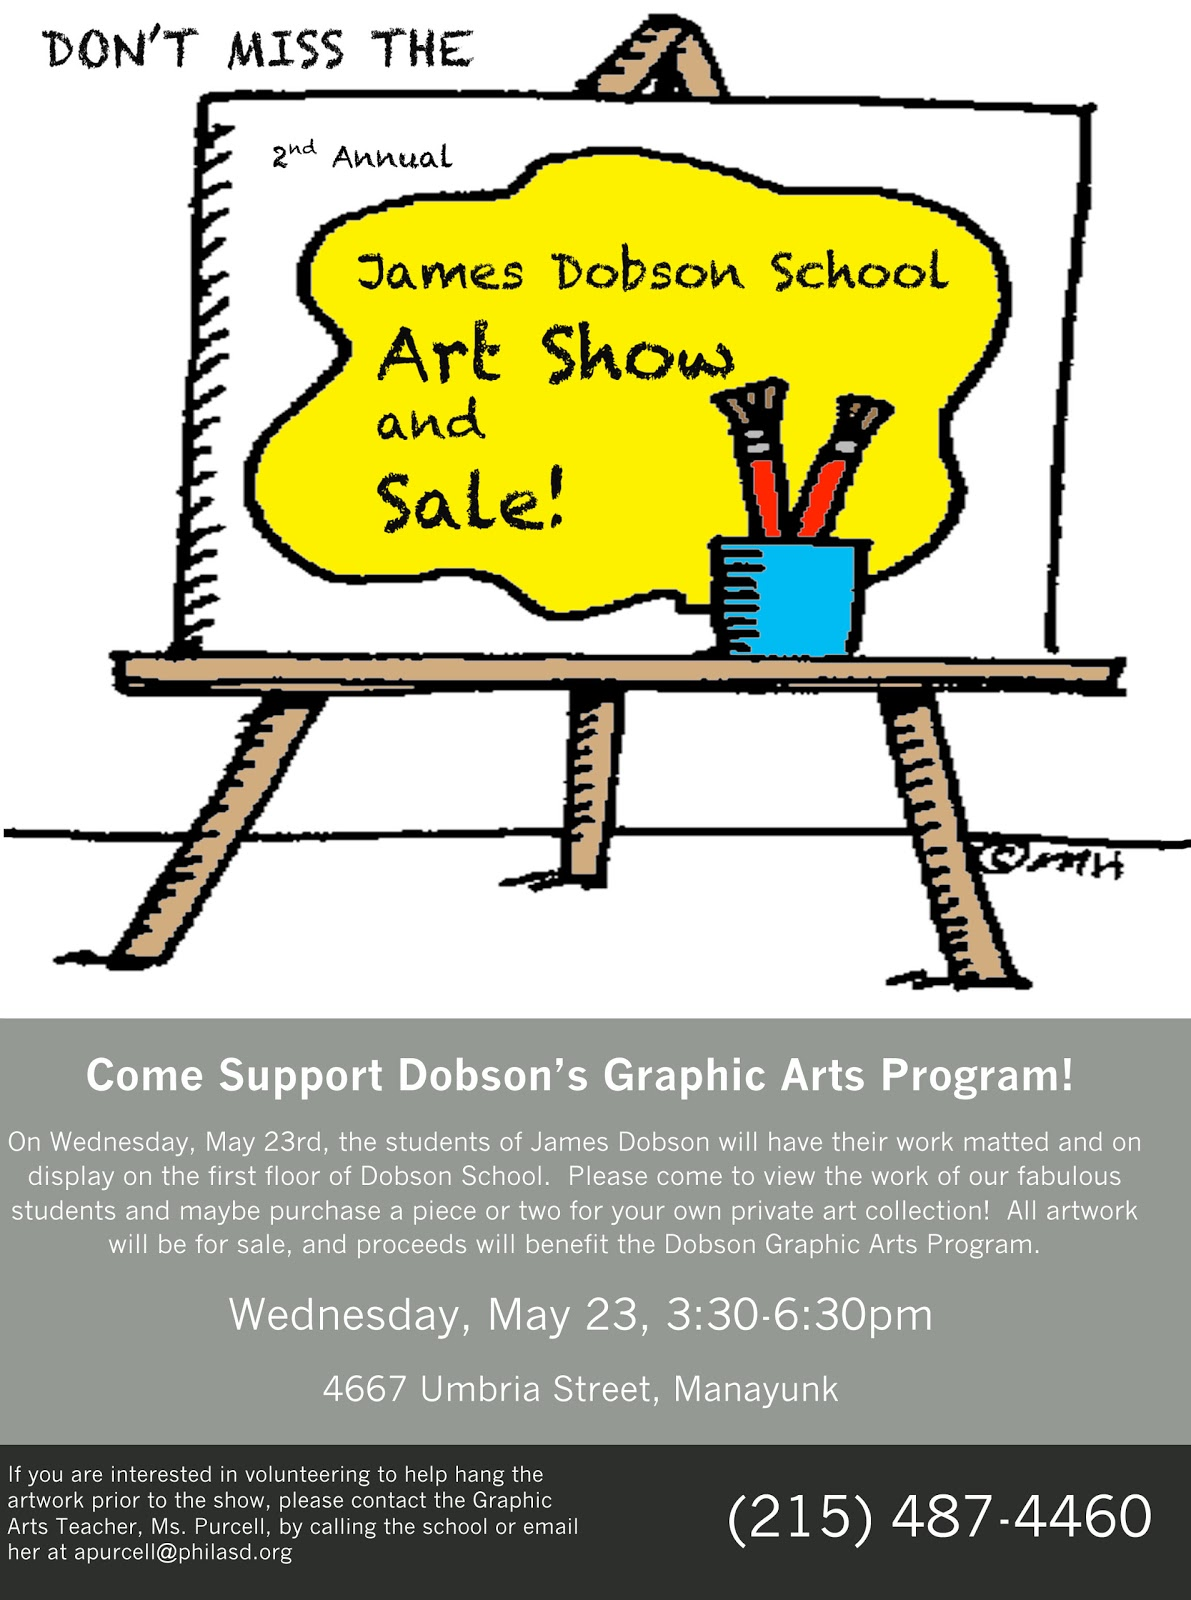 Night lights james dobson - Each Matted Work Costs Only 10 And All Proceeds Go Toward Funding The Graphic Arts Program At Dobson Please Show Your Support By Attending And Possibly